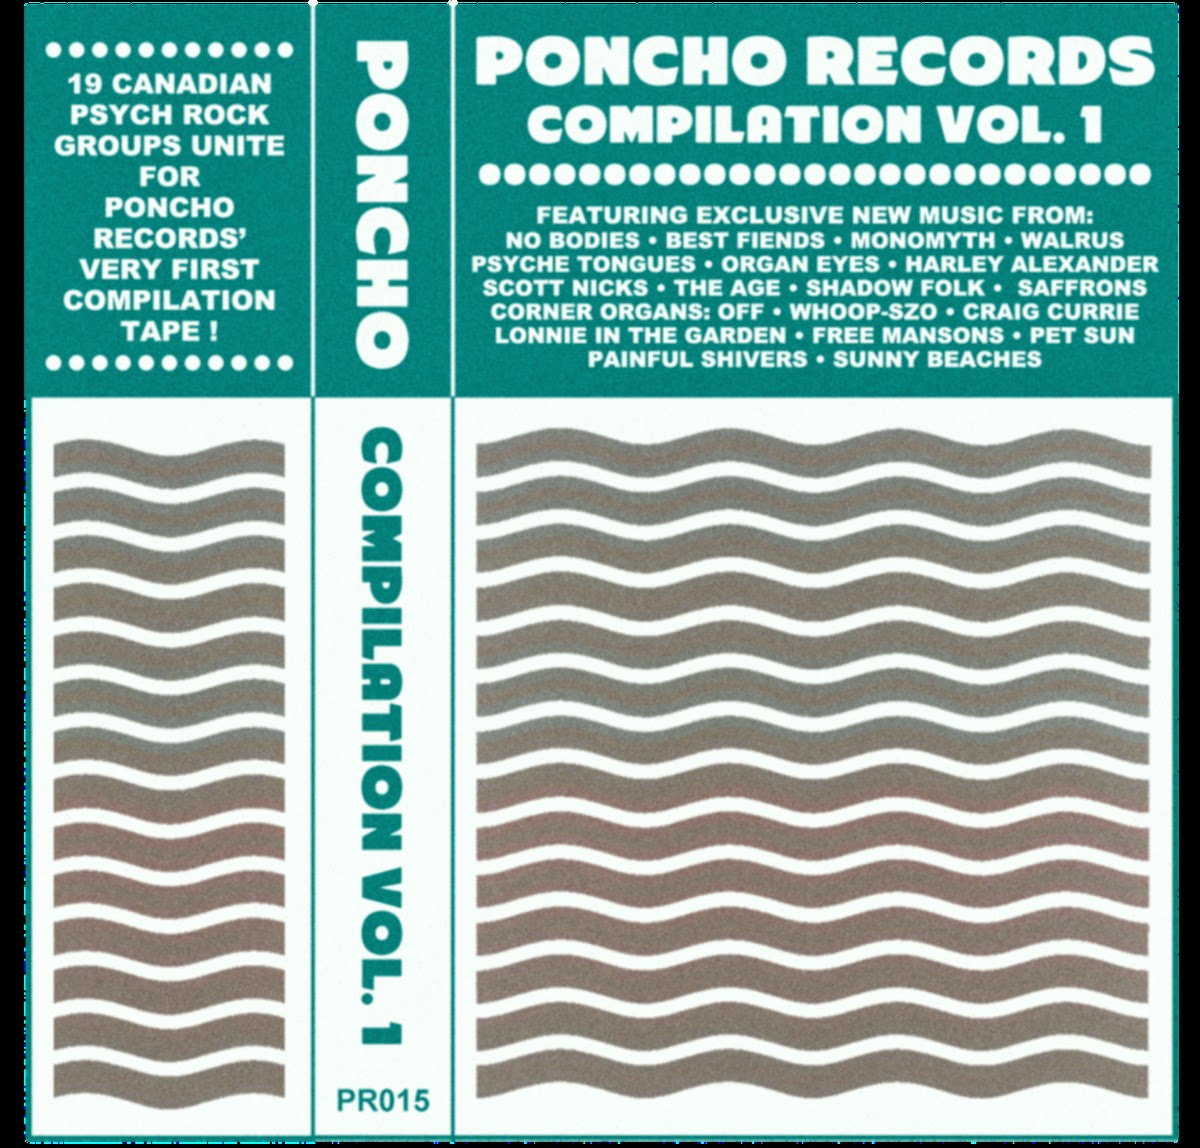 http://www.d4am.net/2014/06/poncho-records-compilation-vol-1.html